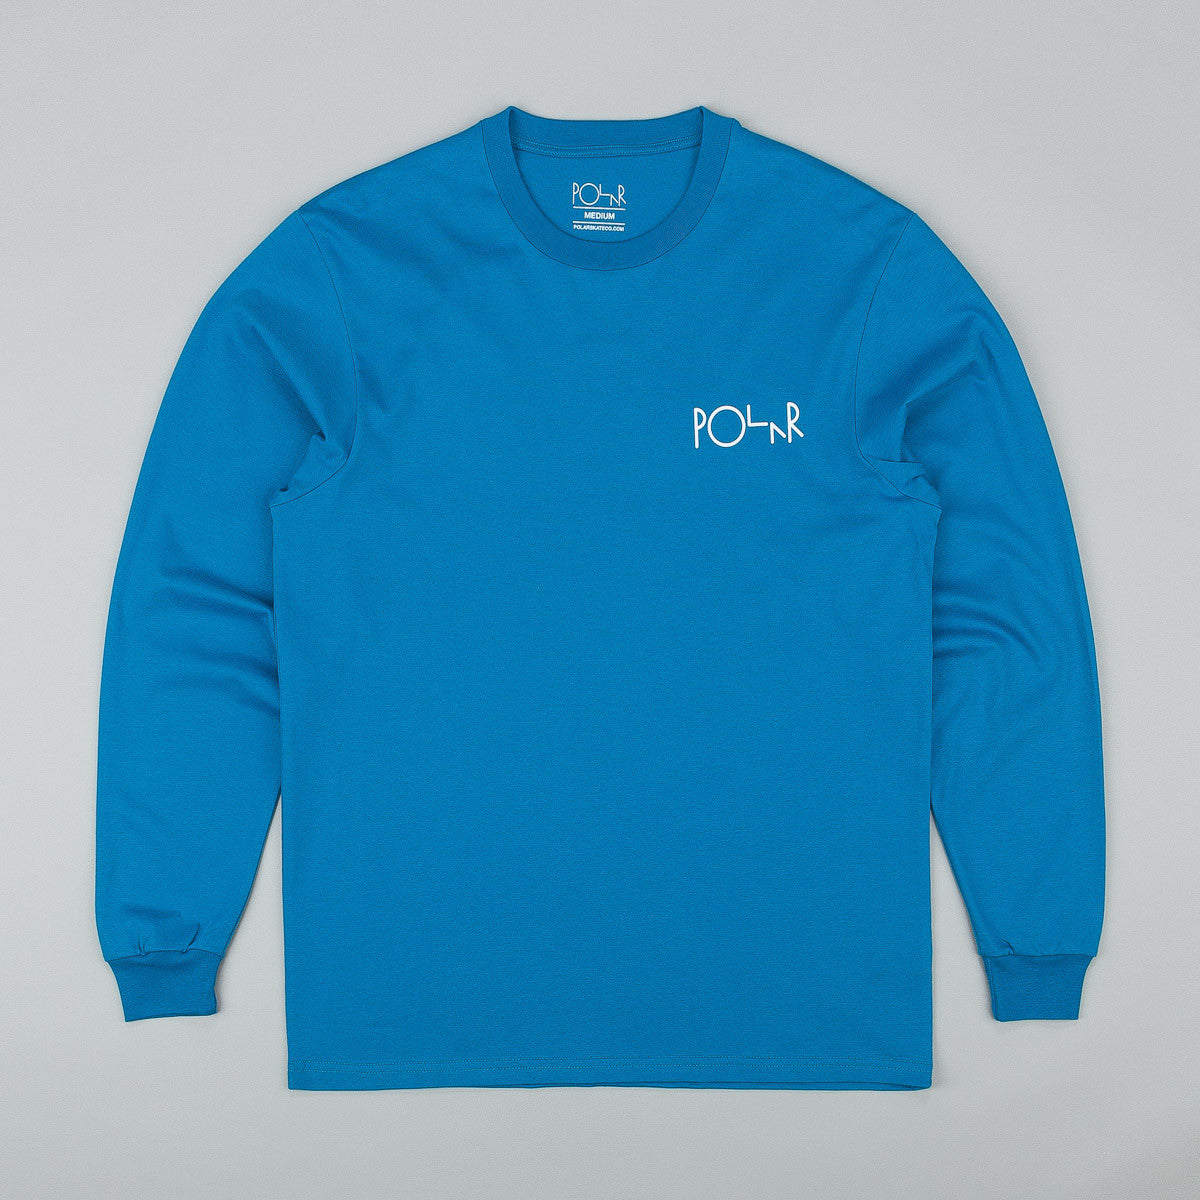 Polar Fill Logo Behind The Curtain Long Sleeve T-Shirt - Obsidian Blue /White